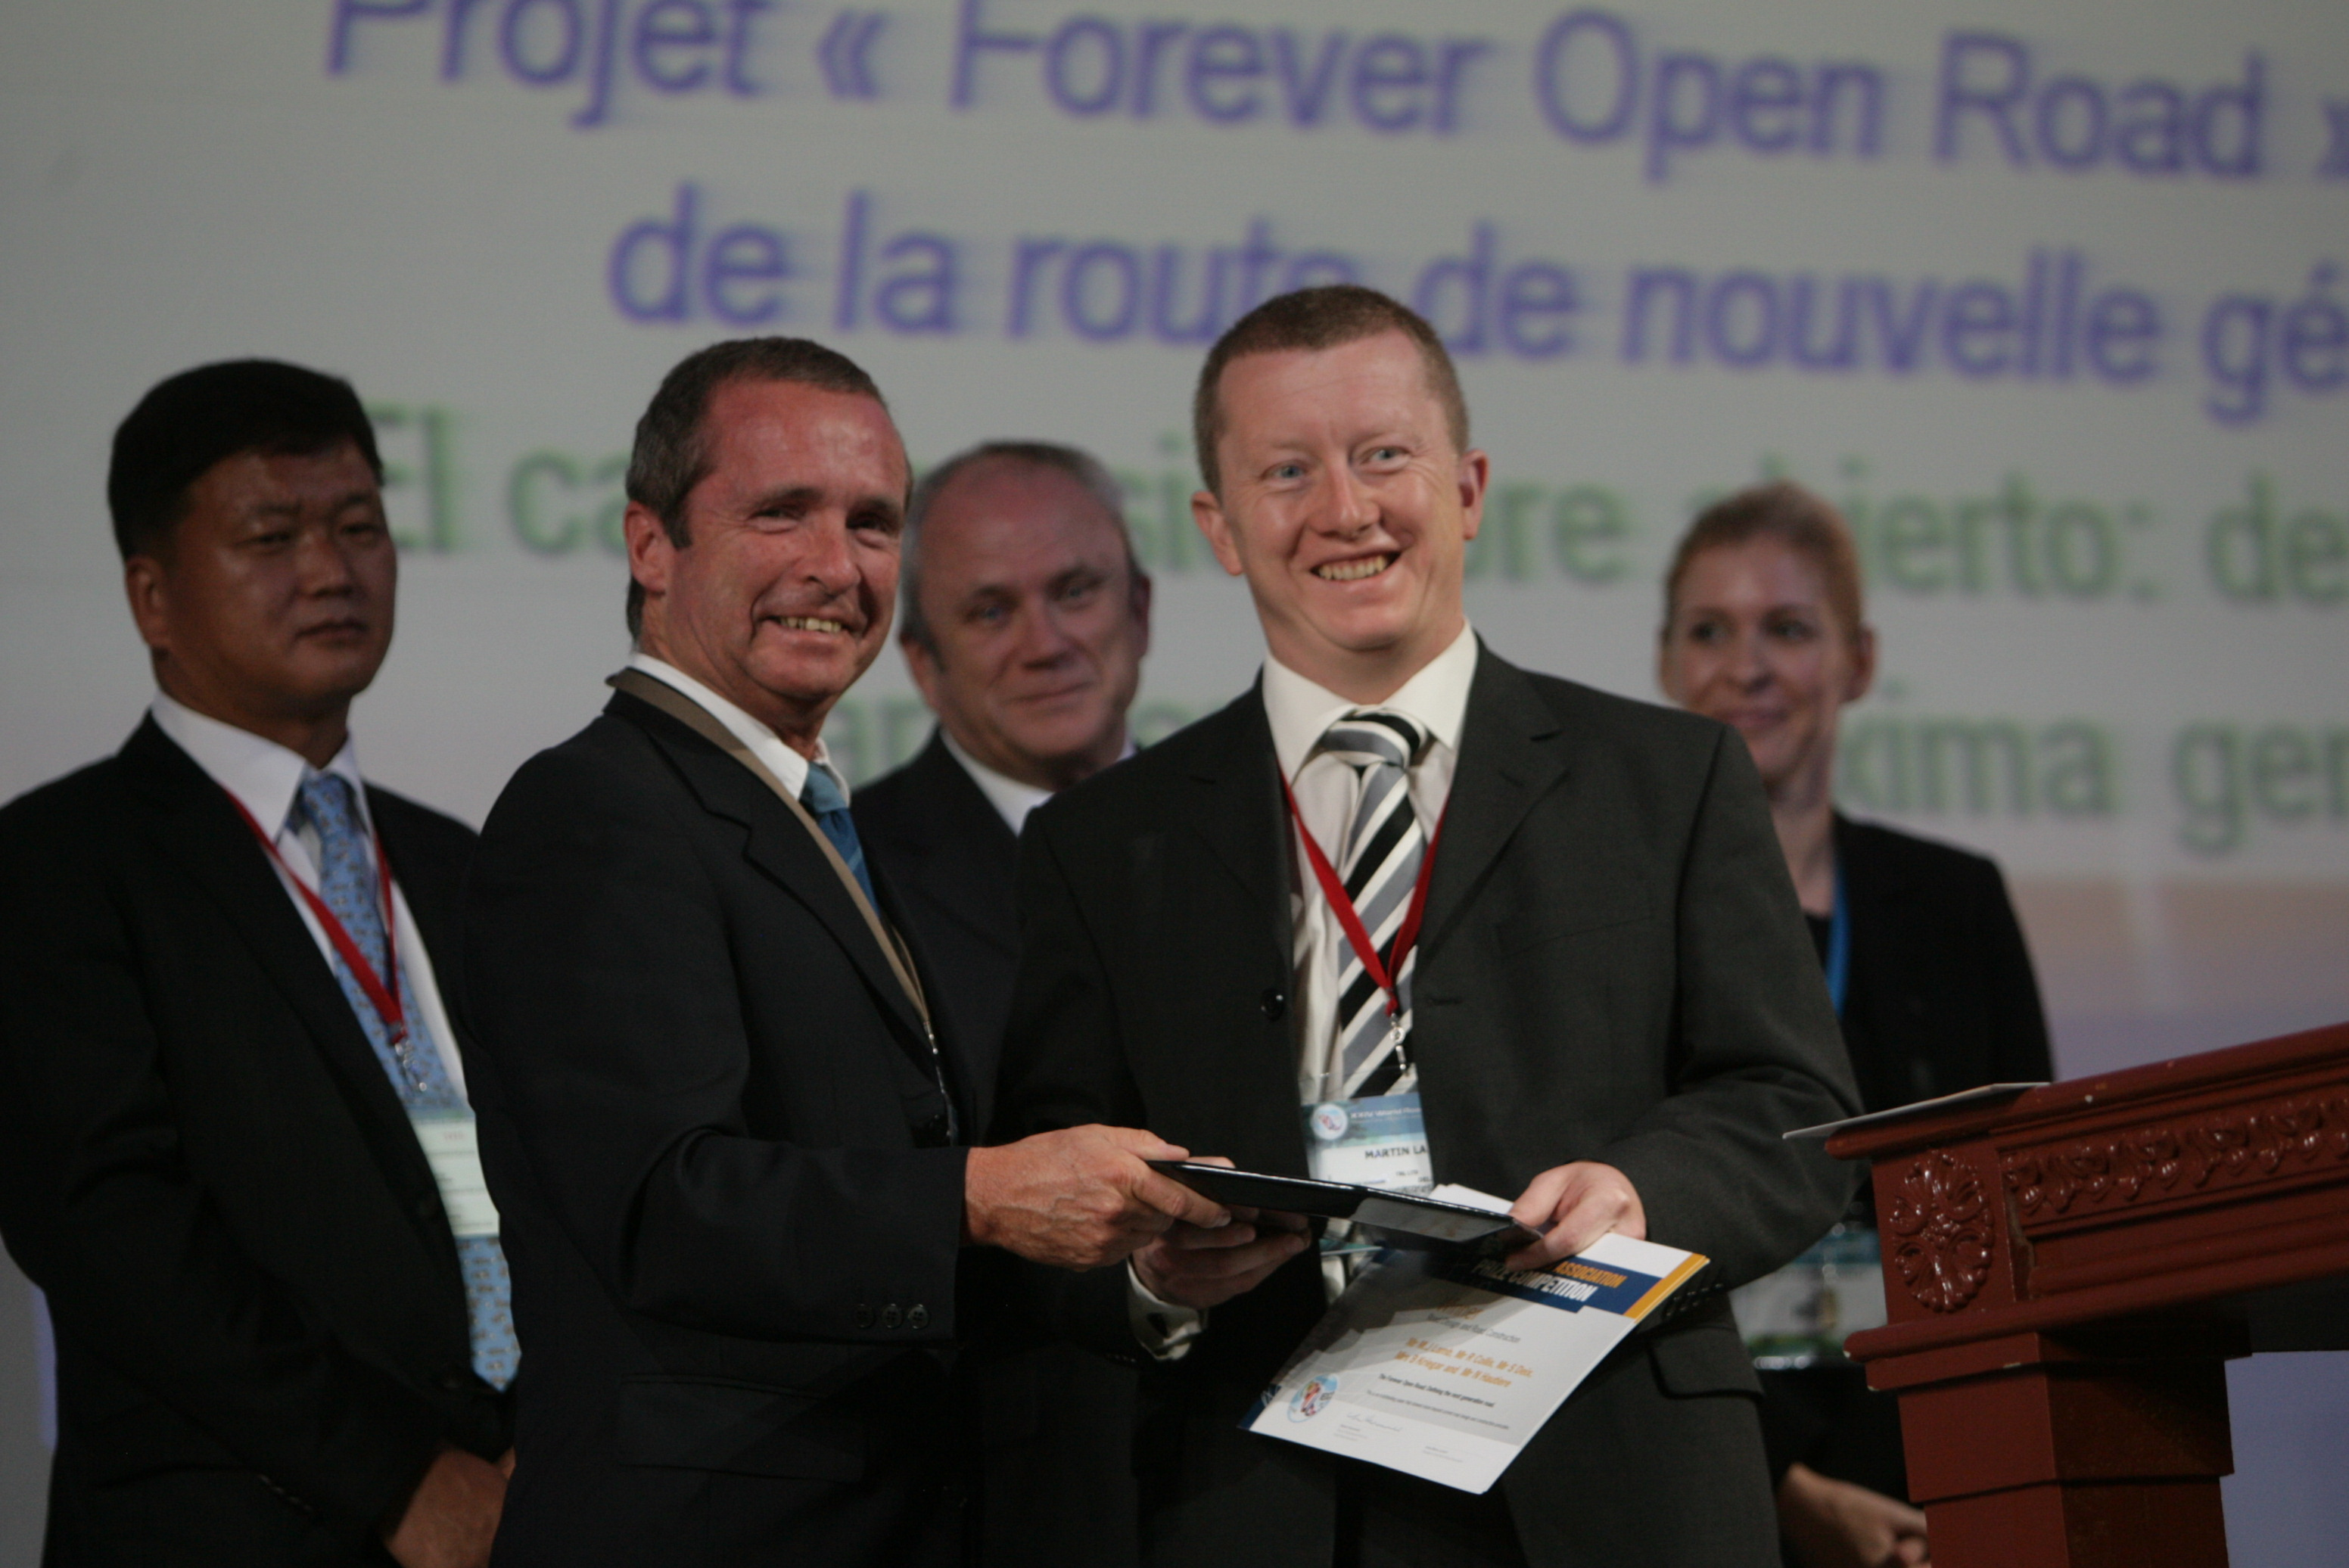 Martin Lamb receiving the prize from BRRC Director-General Claude Van Rooten